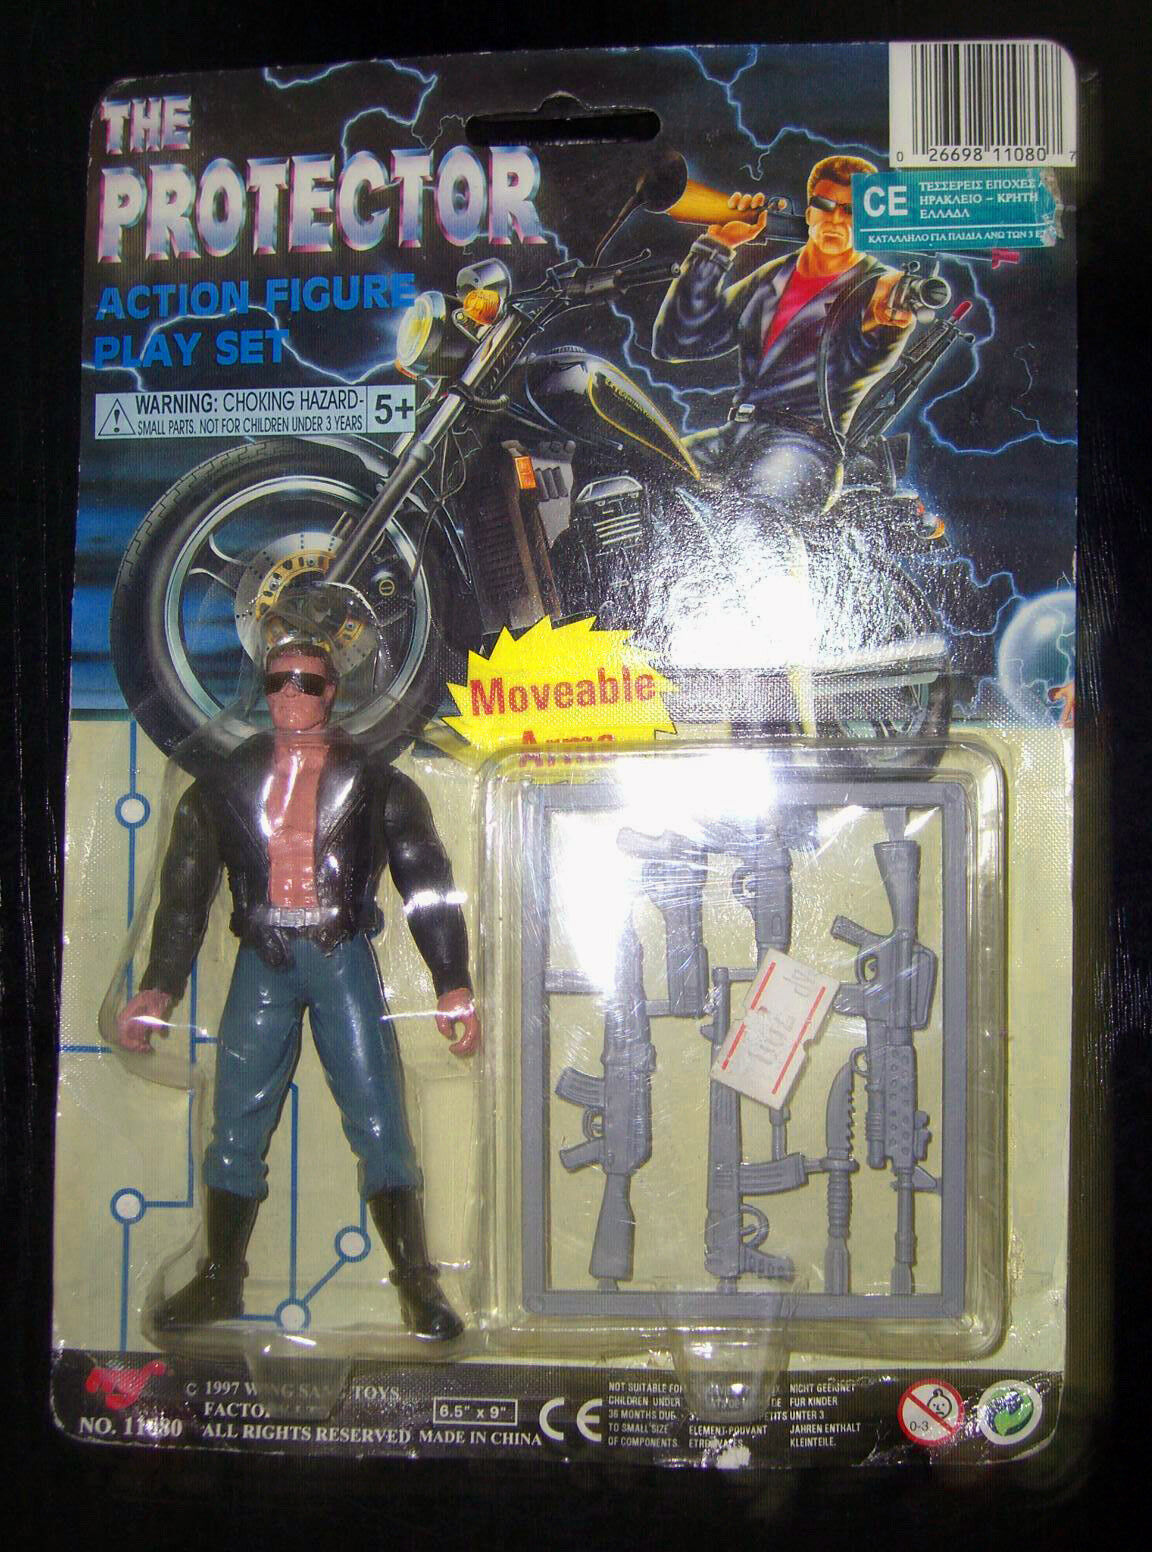 VINTAGE TERMINATOR THE PredECTOR ACTION SET FROM 90s US FIGURE (RARE) NOT KENNER